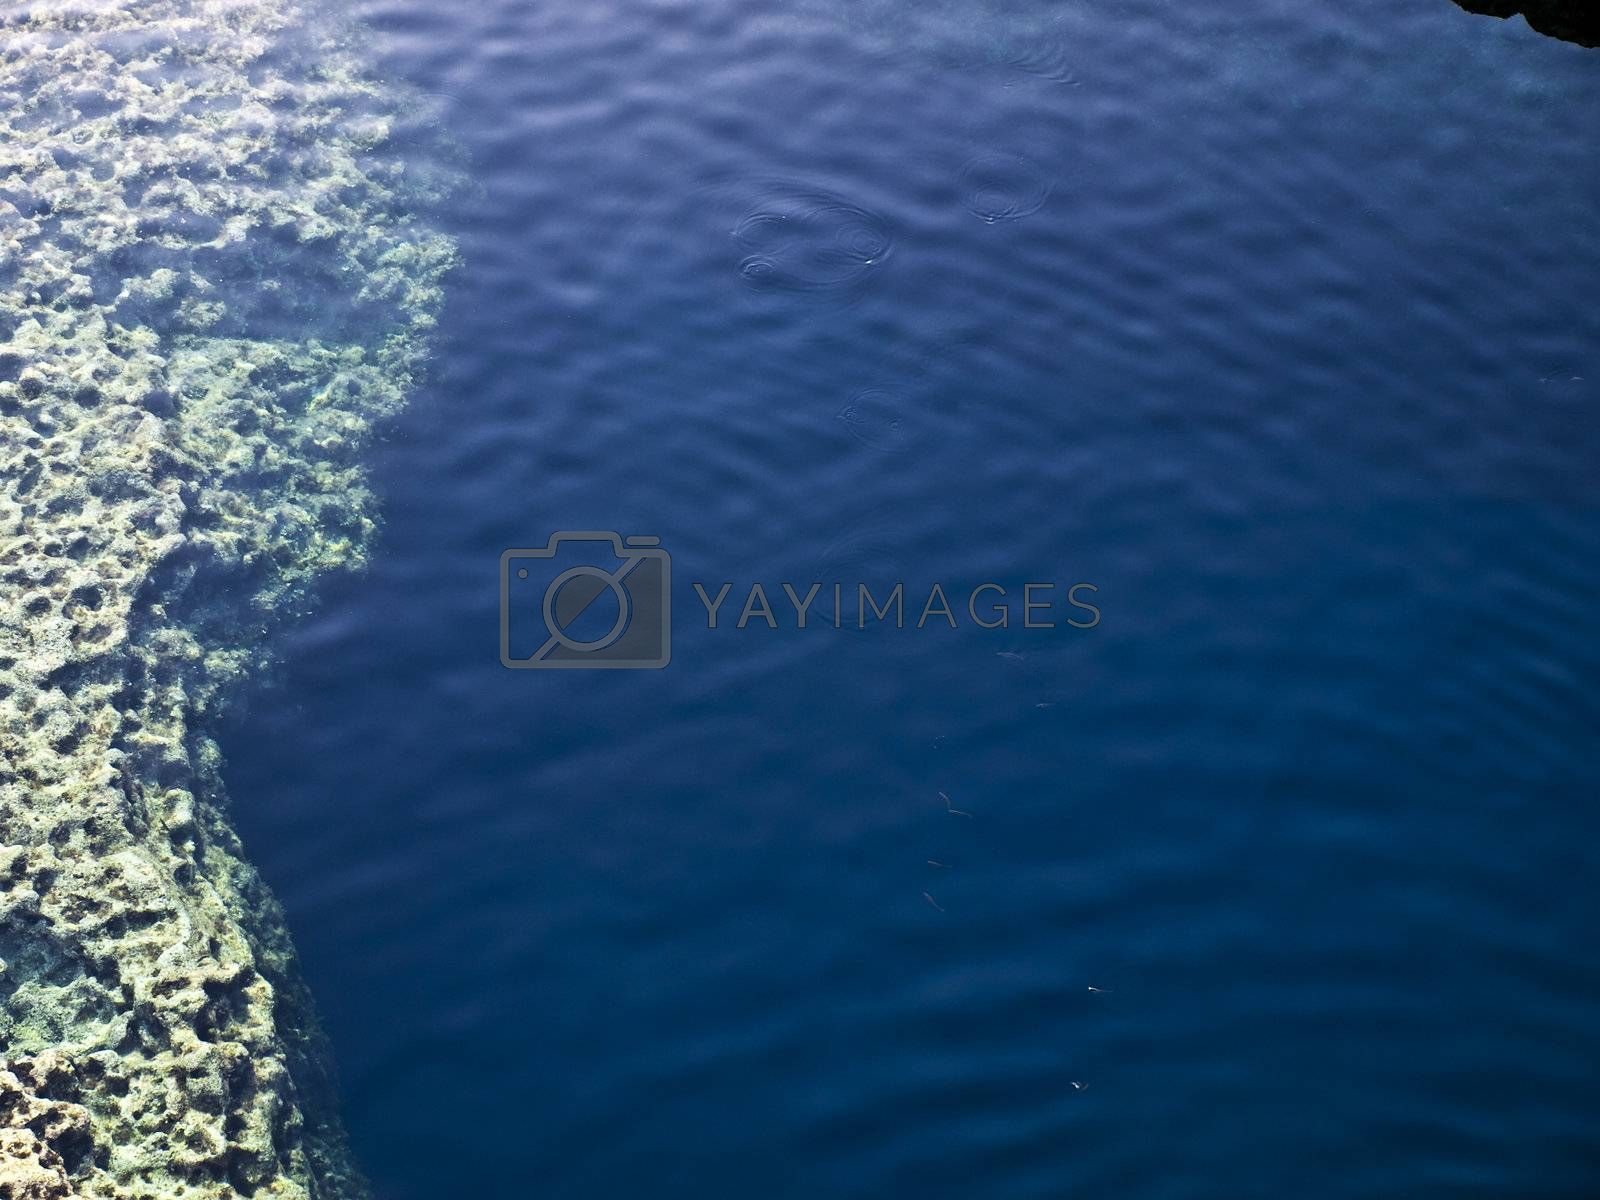 Royalty free image of Blue Hole Reef by PhotoWorks